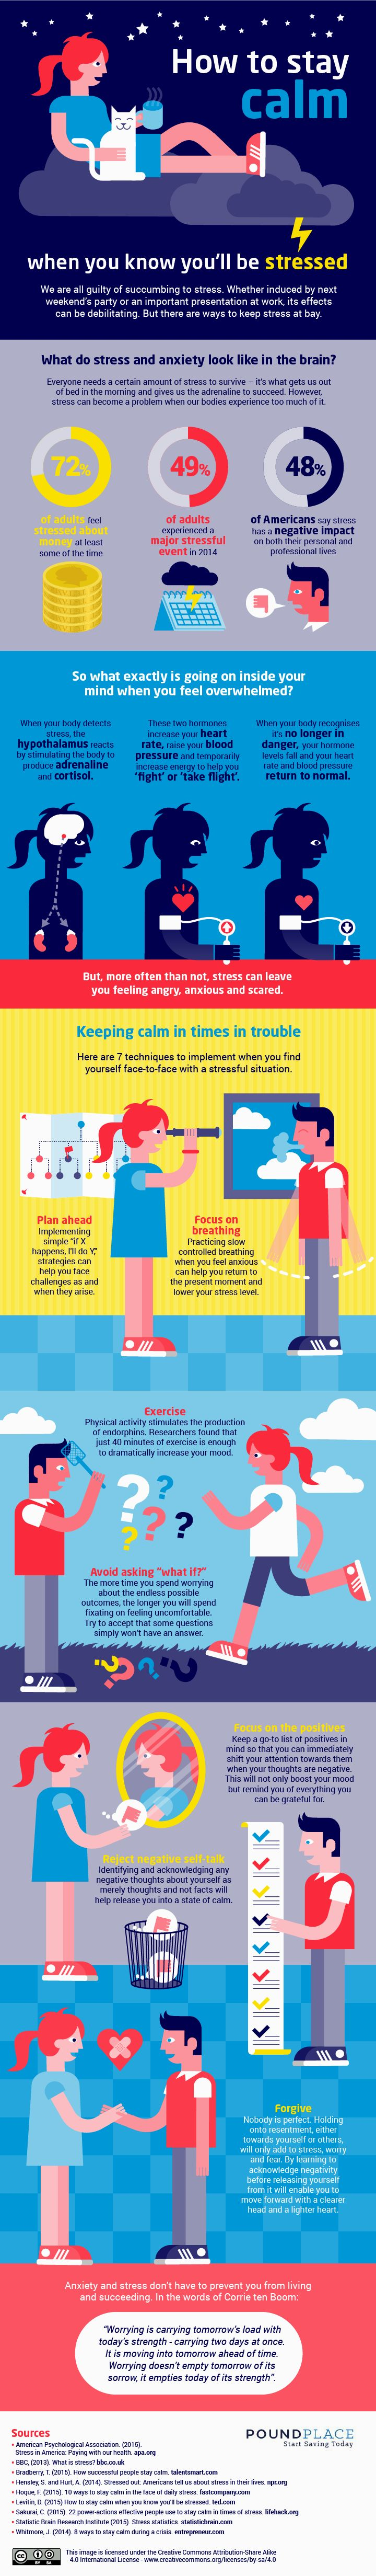 How To Stay Calm Under Pressure Infographic Bloghubspotcom